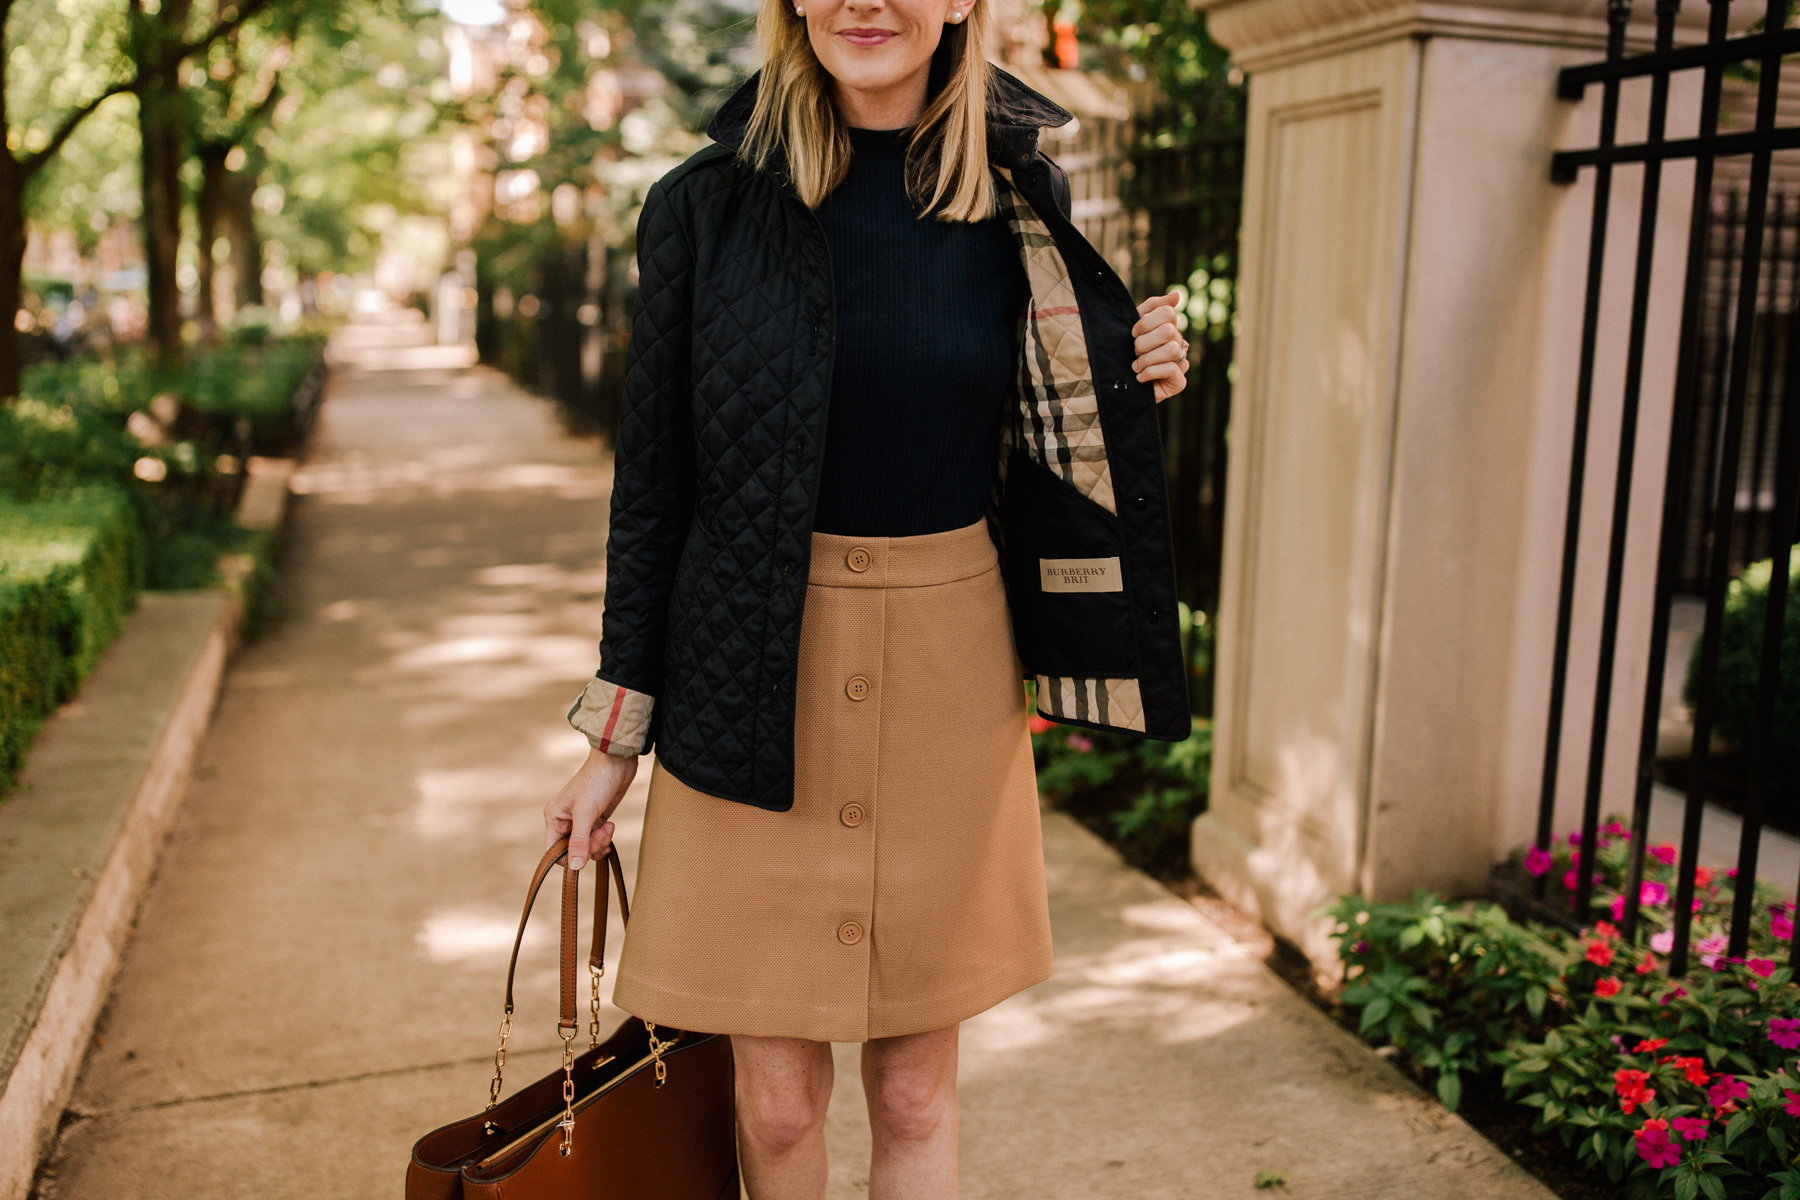 Burberry Jacket On Sale Kelly In The City Bloglovin - Fake invoice maker burberry outlet online store